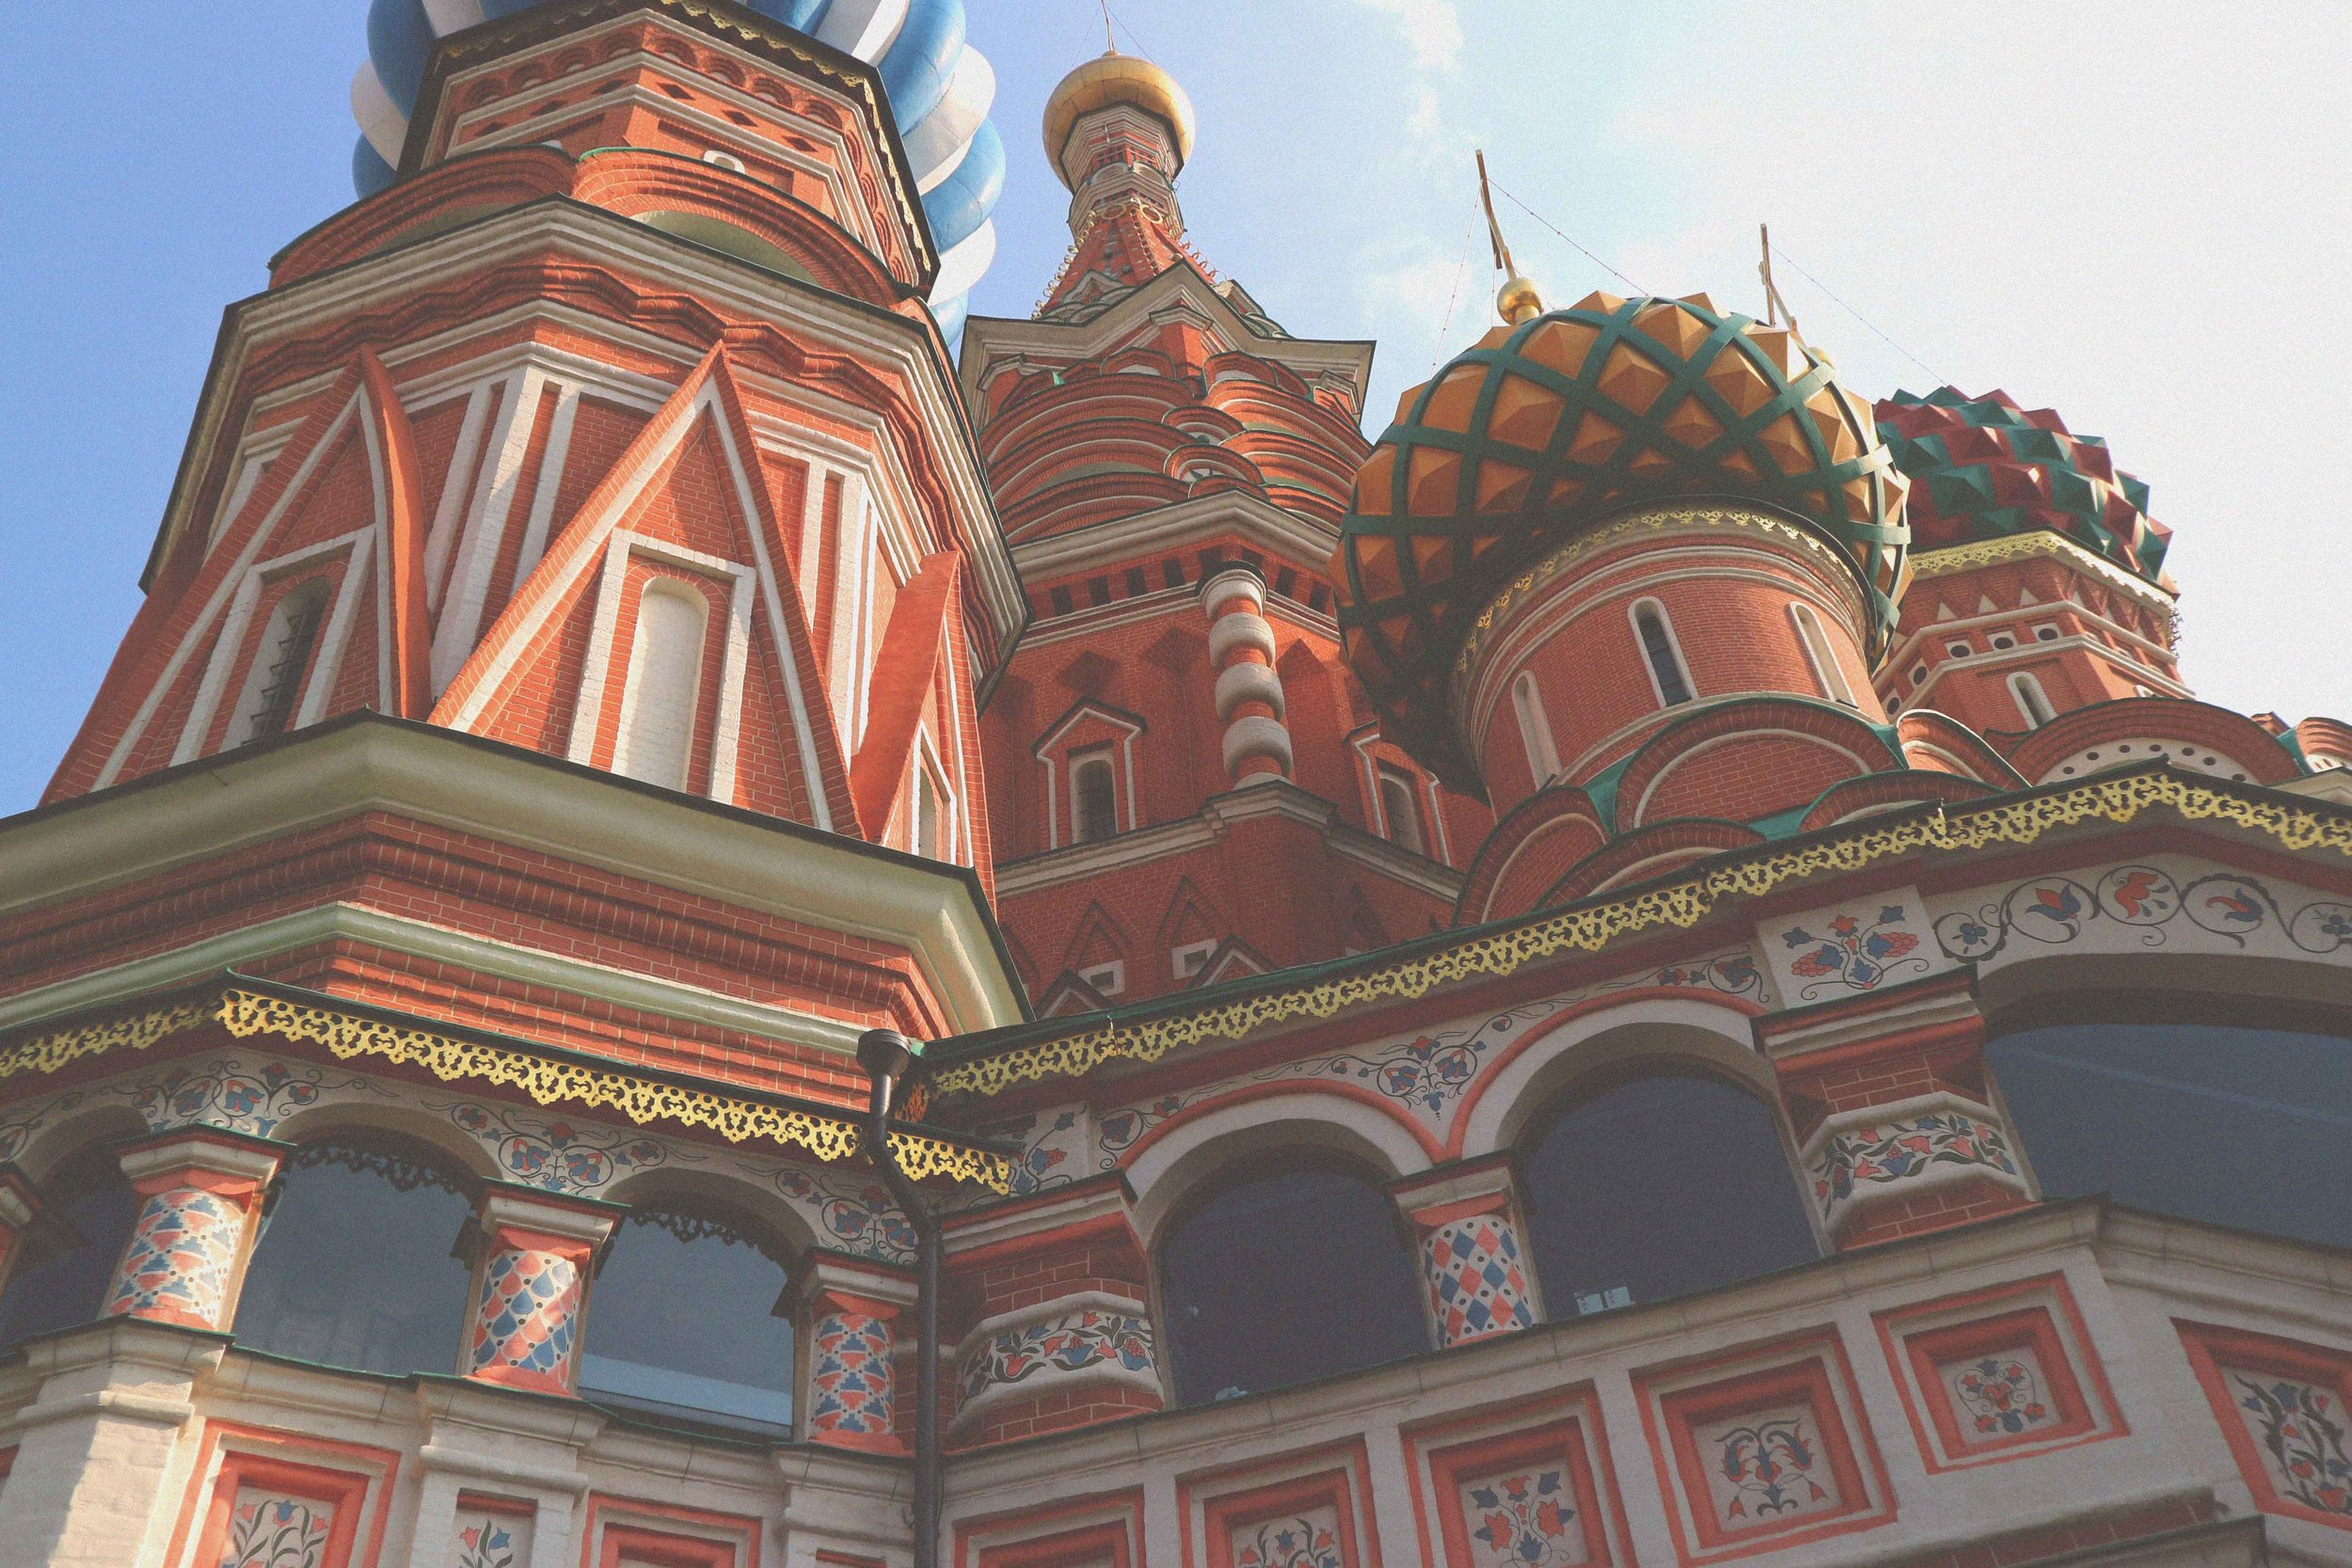 St Basils Catherdral in Moscow, Russia